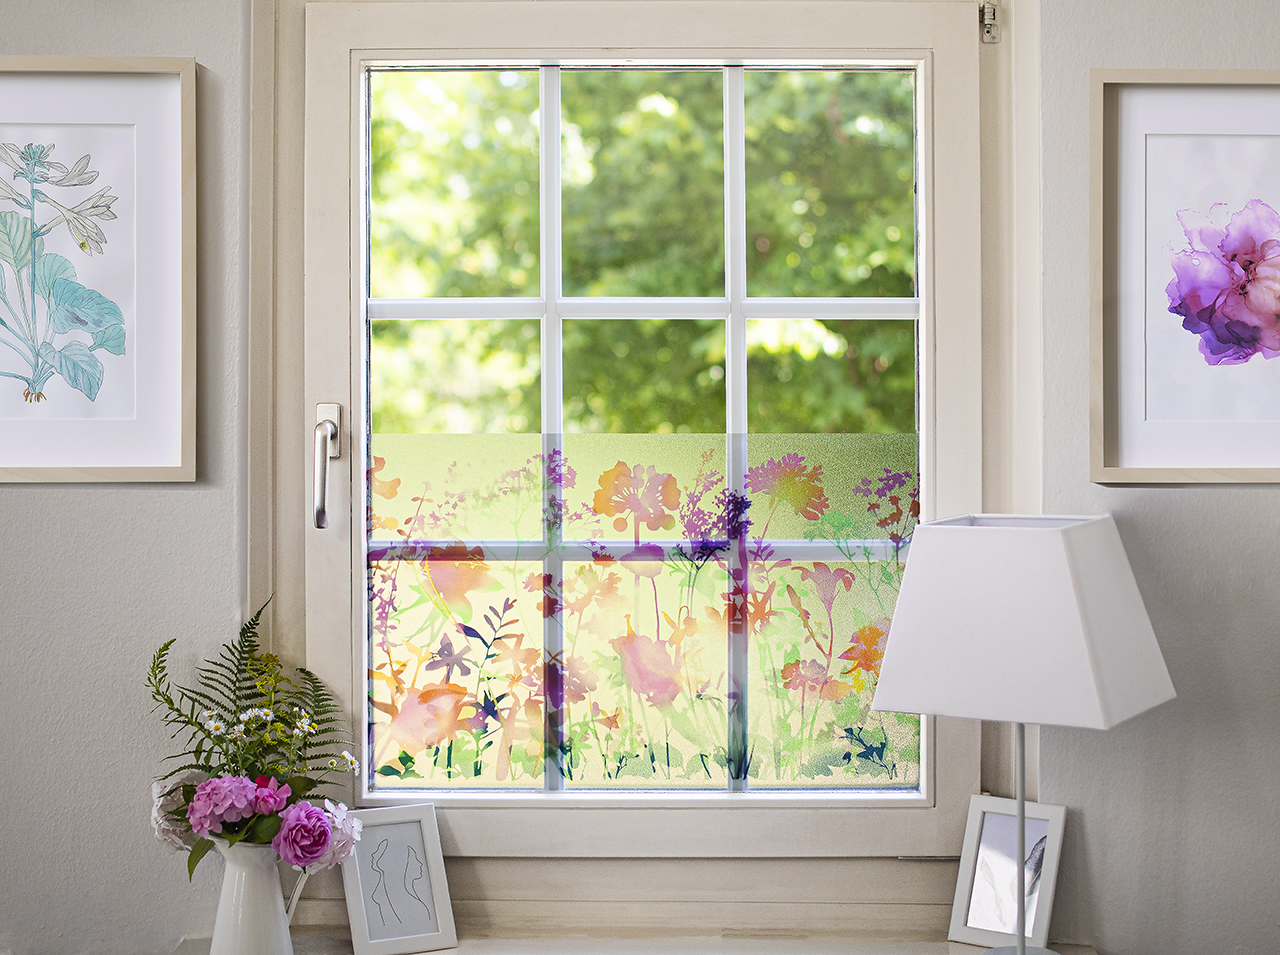 Window surface covered with d-c-fix® protective film Static Premium Miraflores for greater privacy.